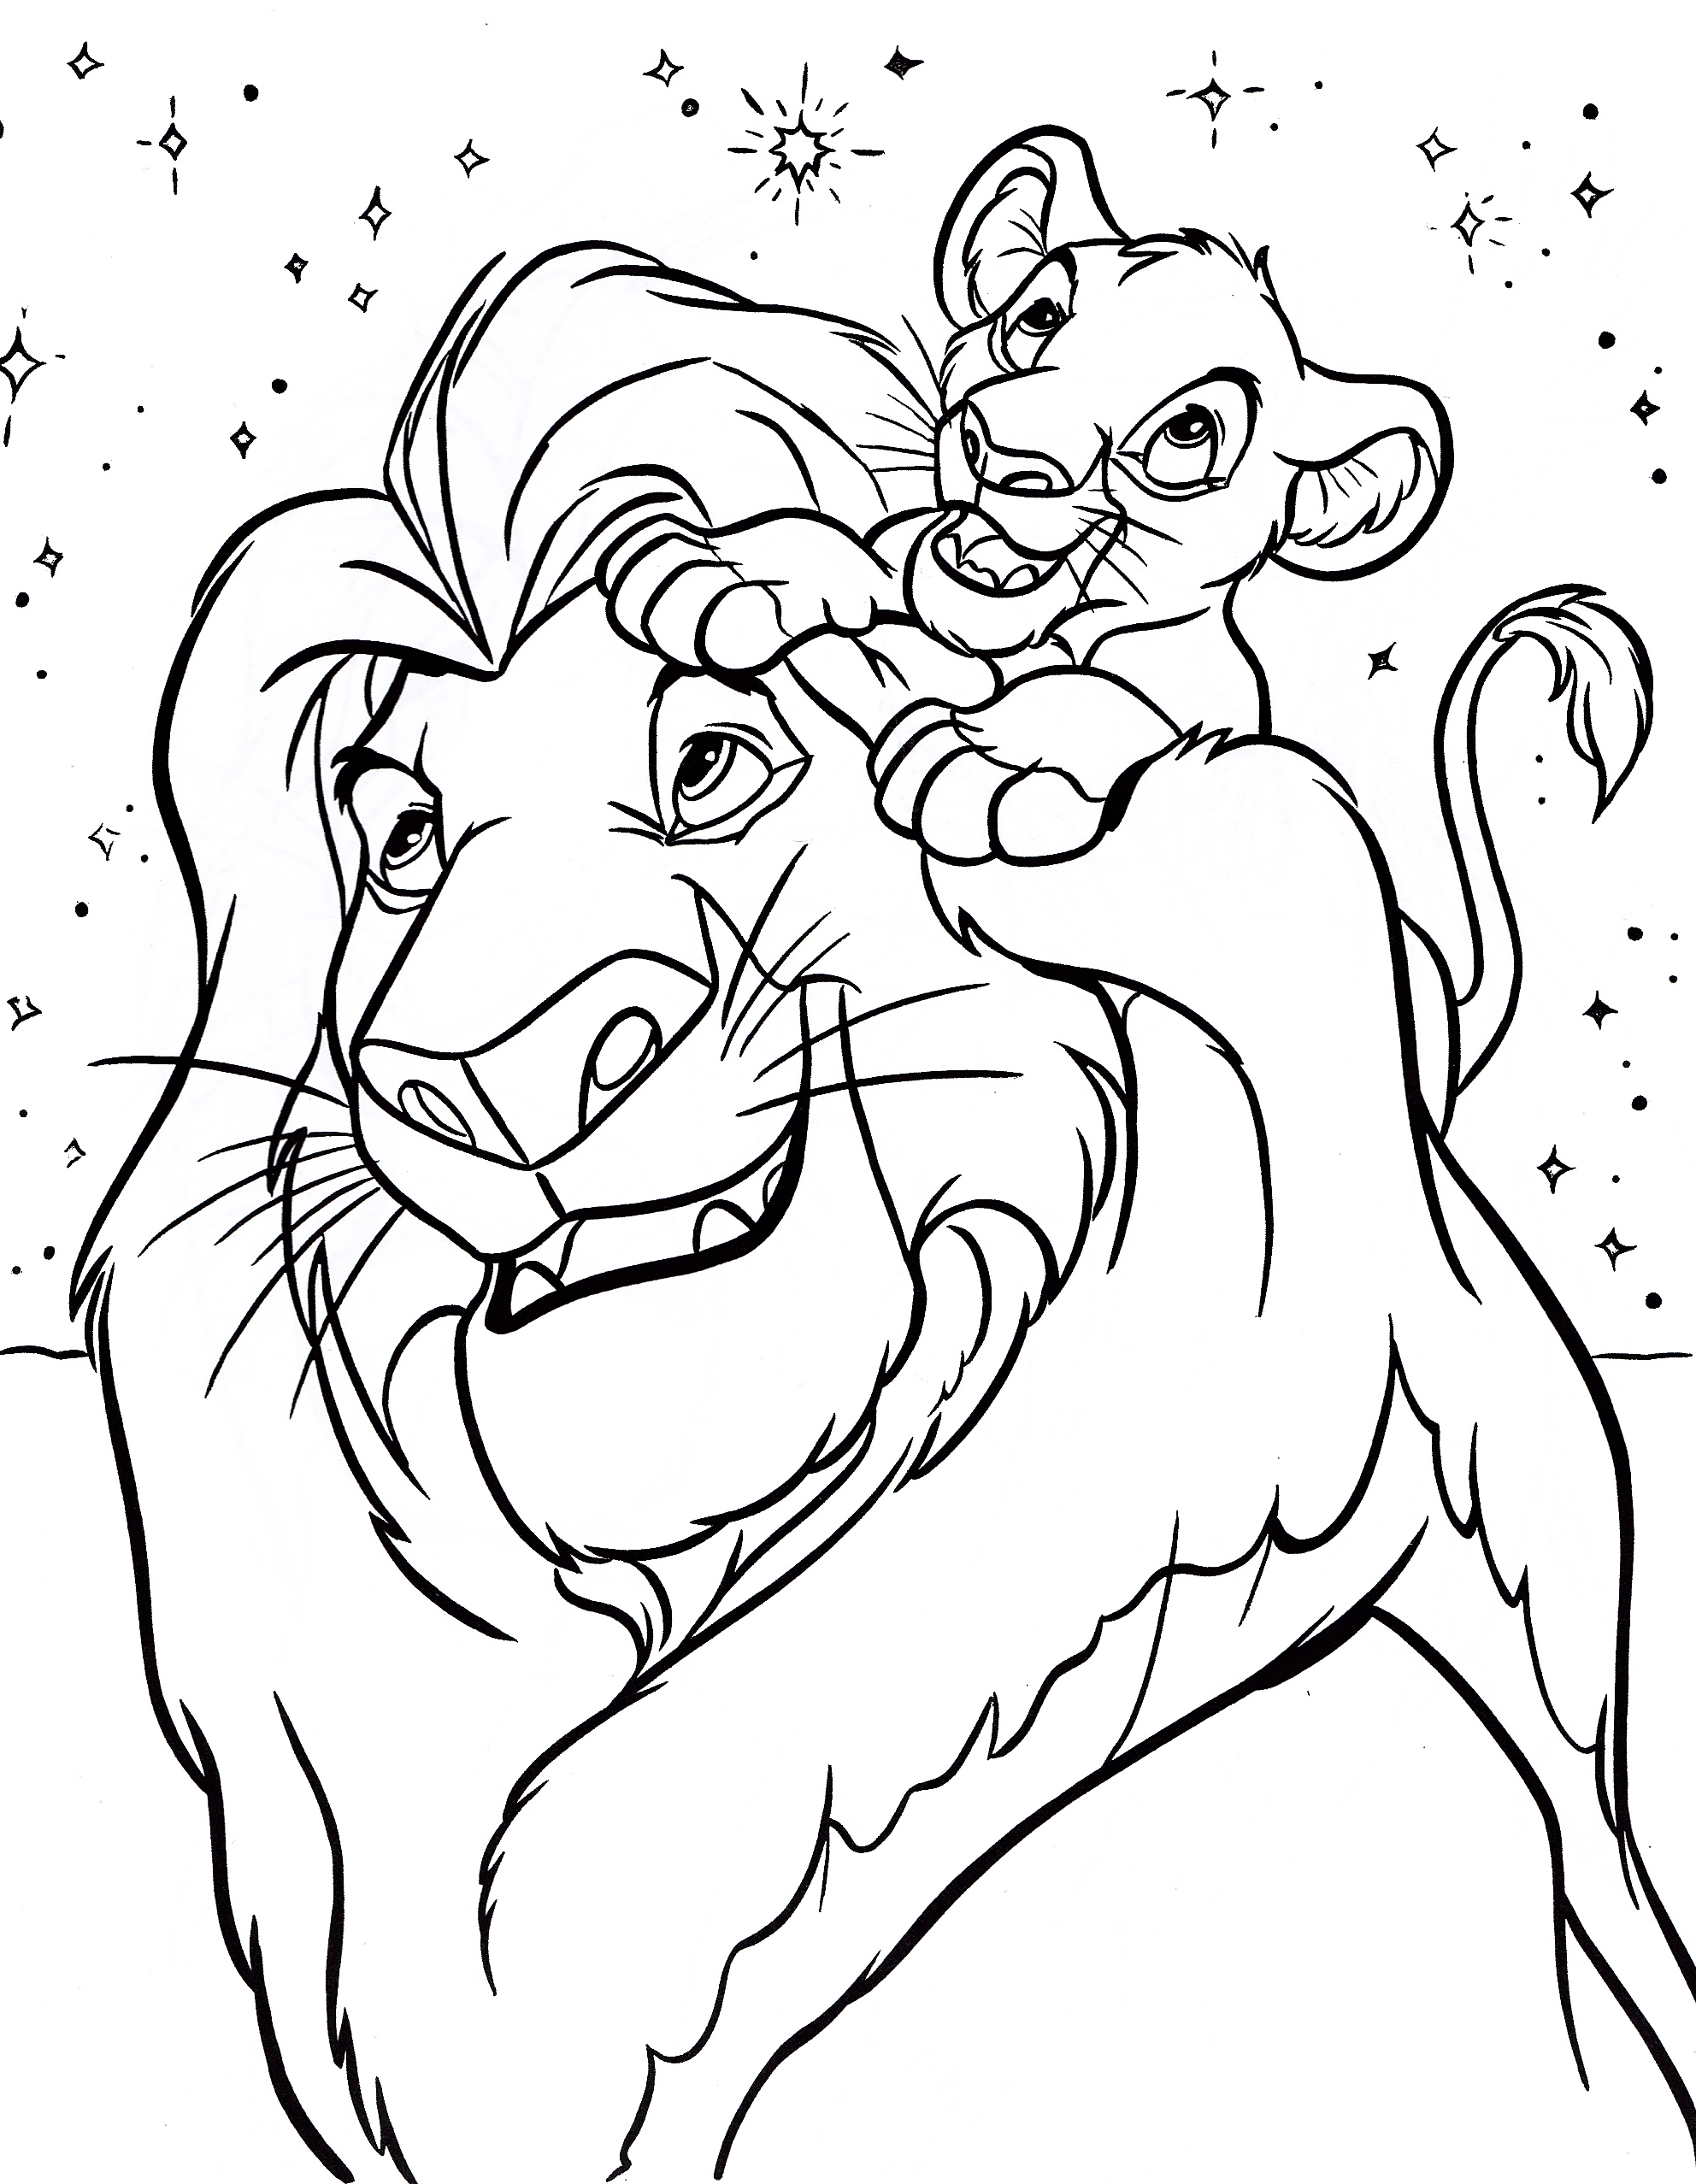 kids free coloring pages disney - photo#17